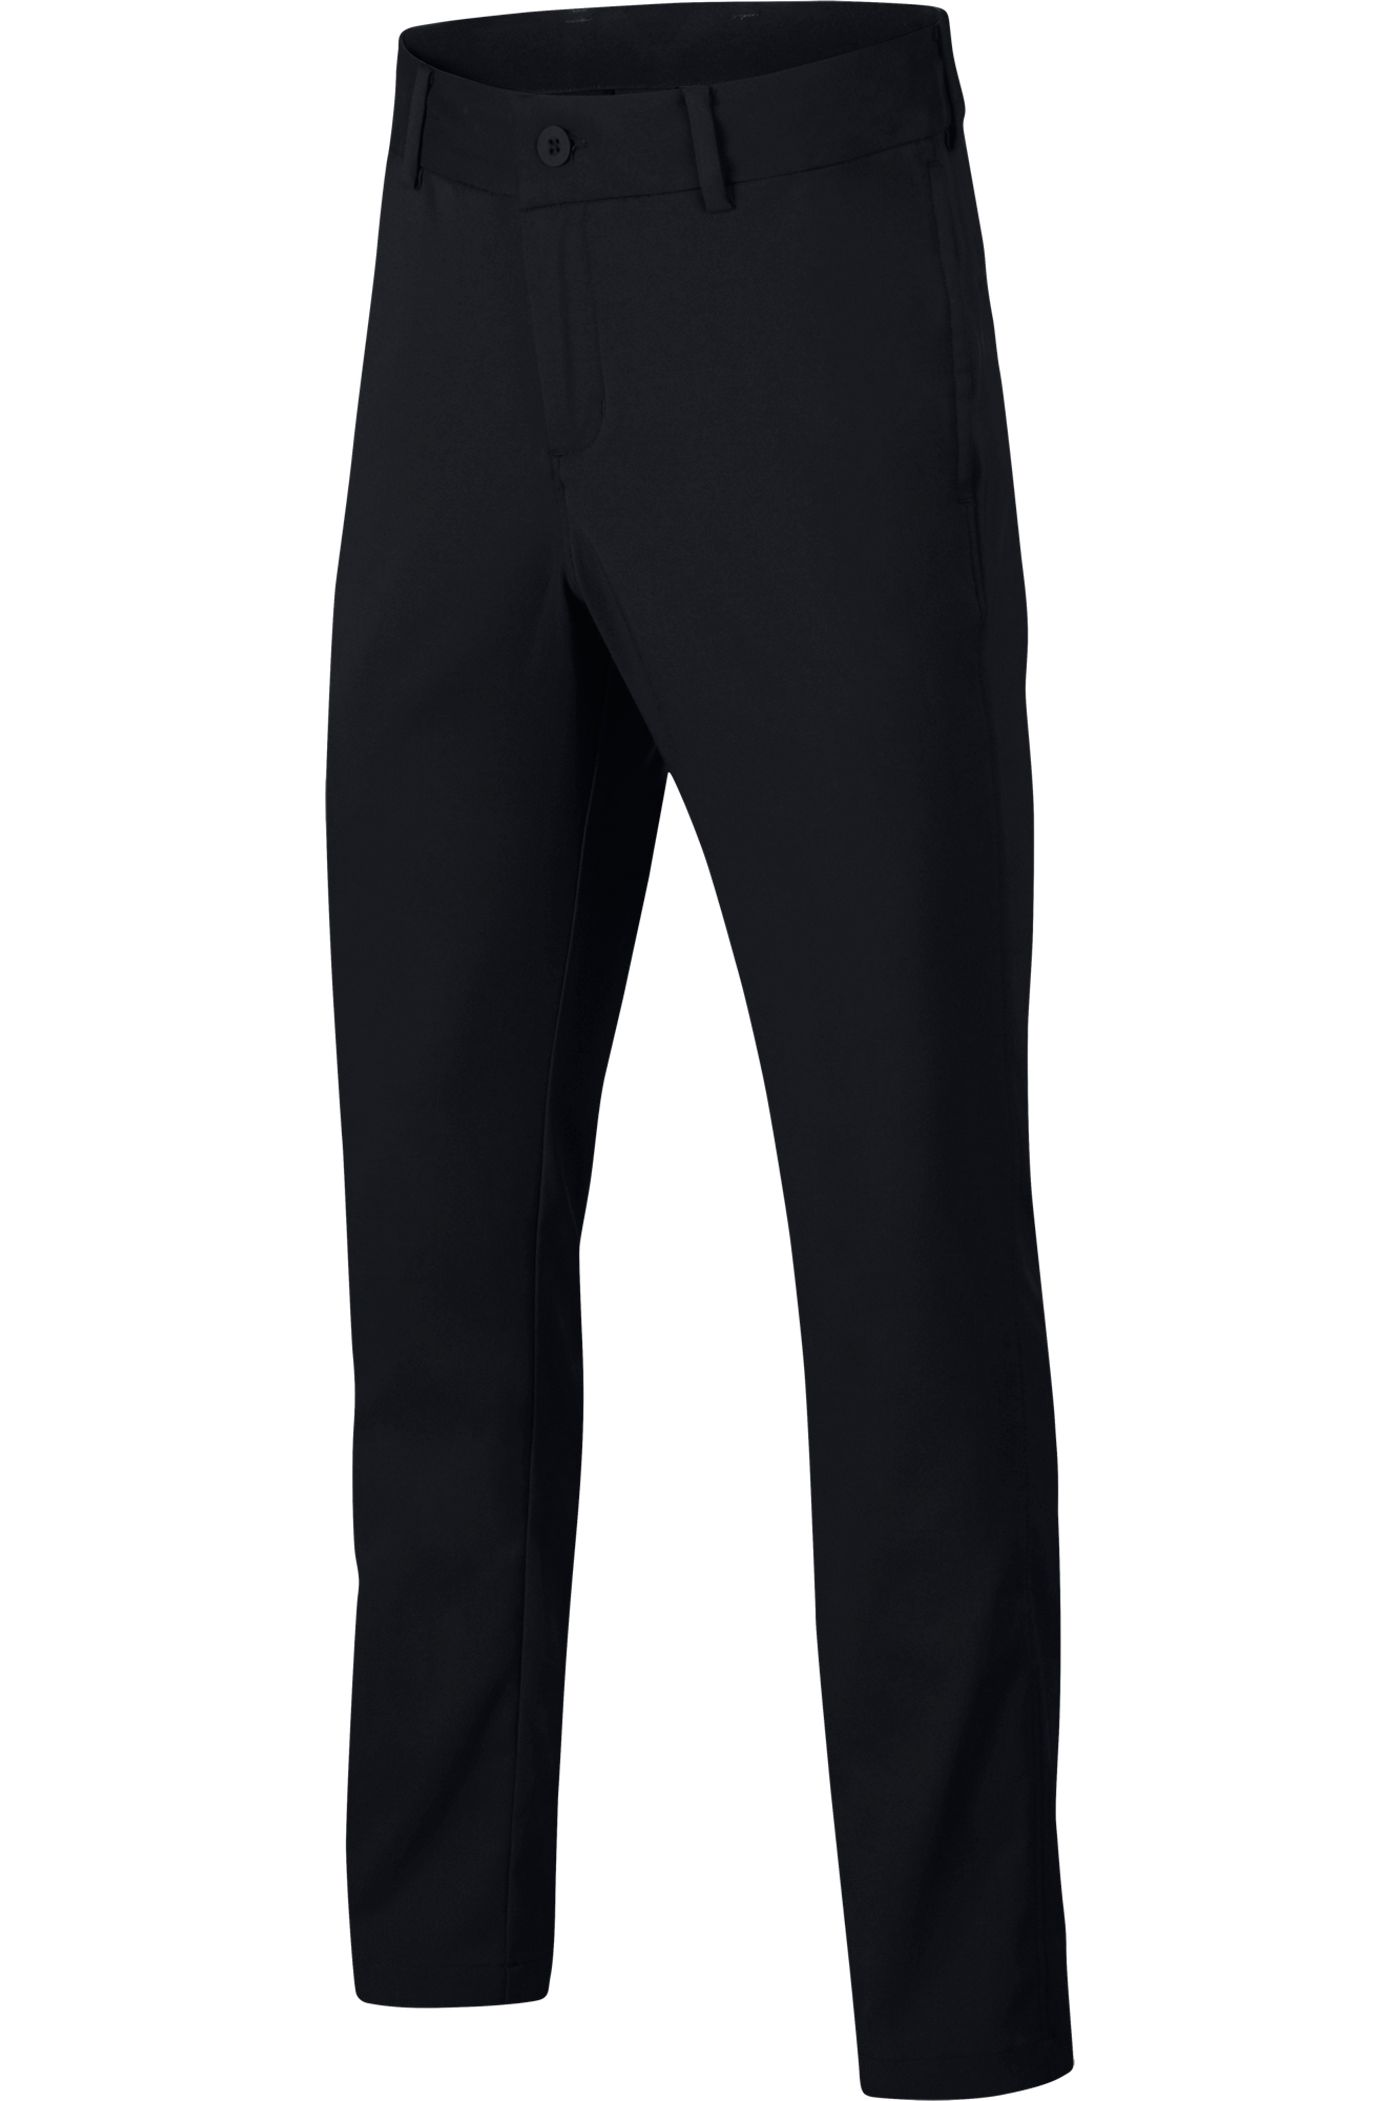 Nike Boys' Flex Golf Pants